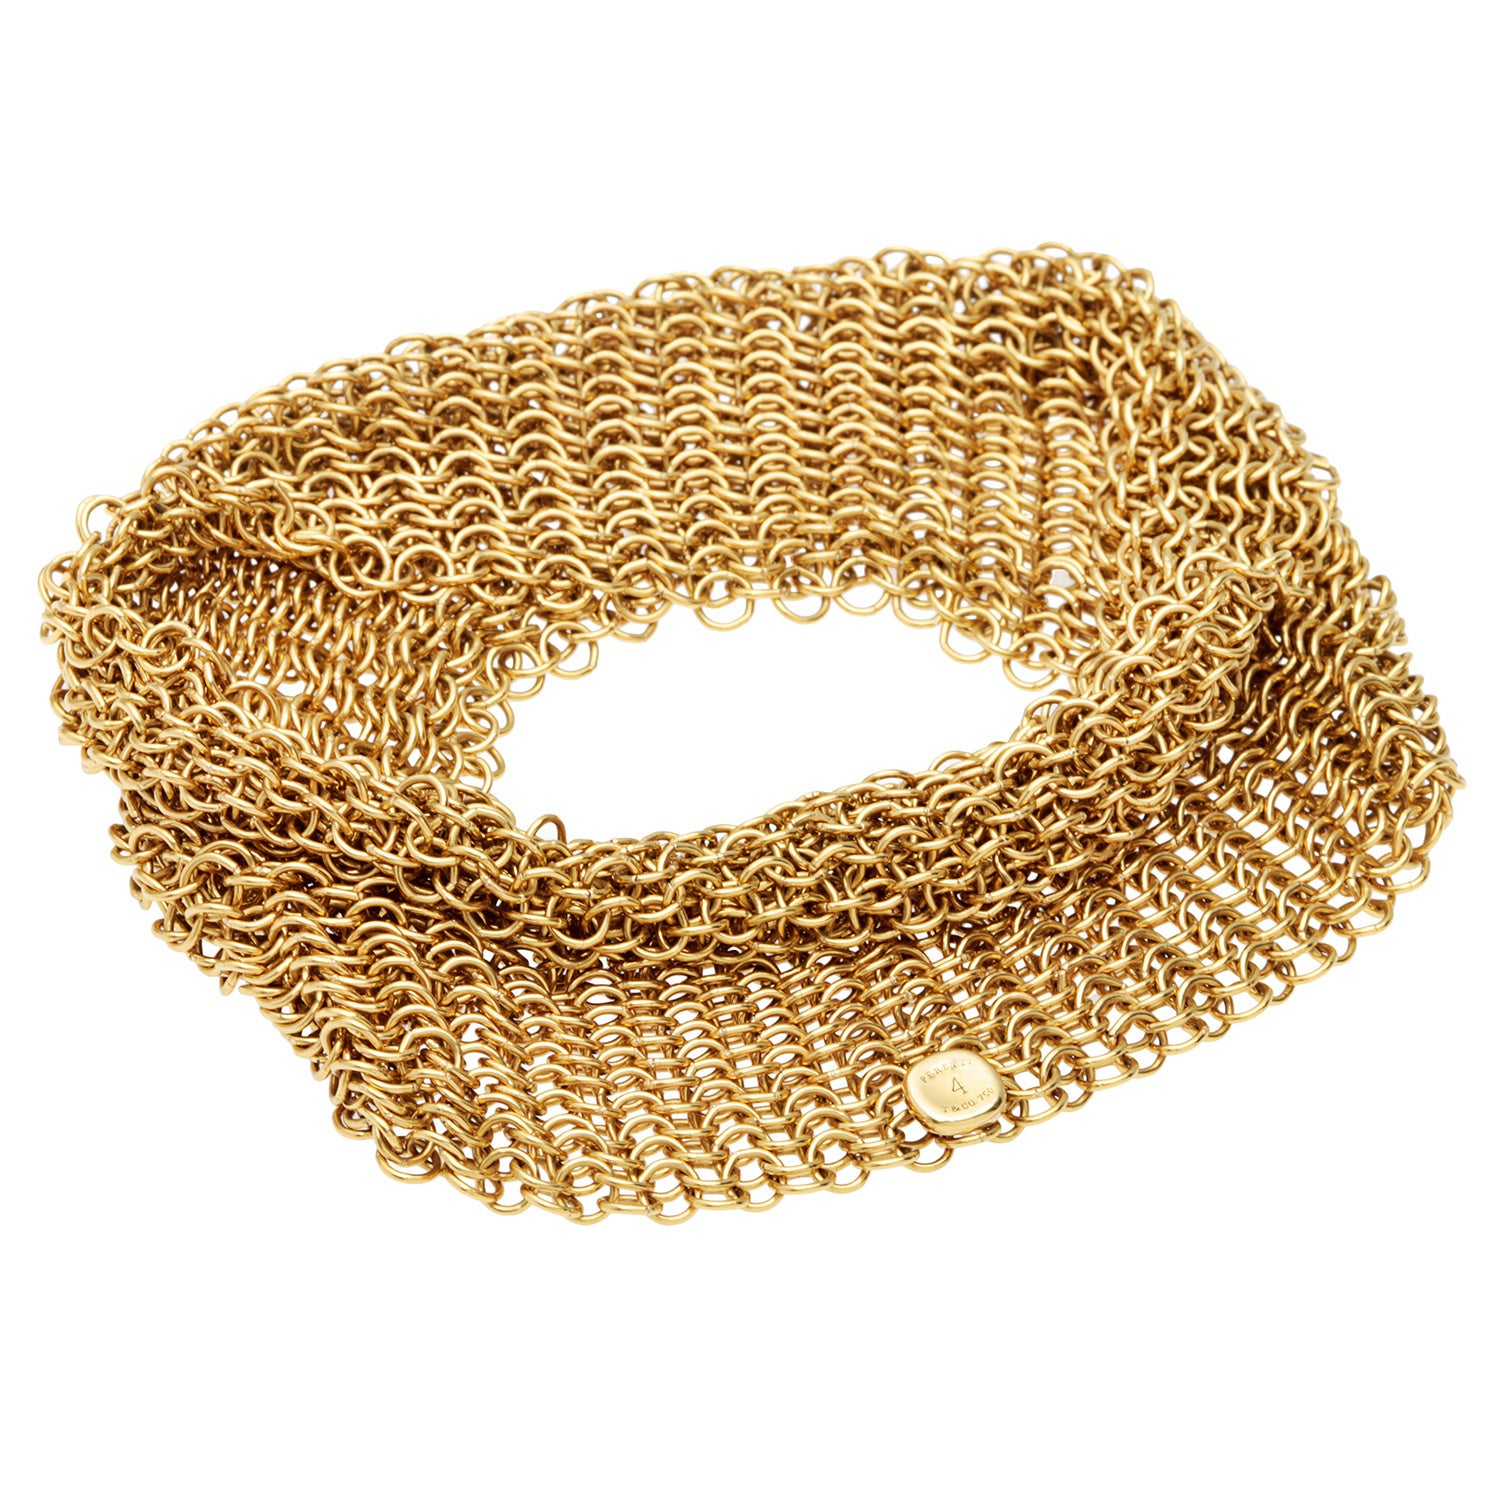 6259e8cb5 Shop Pre-owned 18K Yellow Gold Elsa Peretti Mesh Bracelet by Tiffany & Co.  - Free Shipping Today - Overstock - 9626120